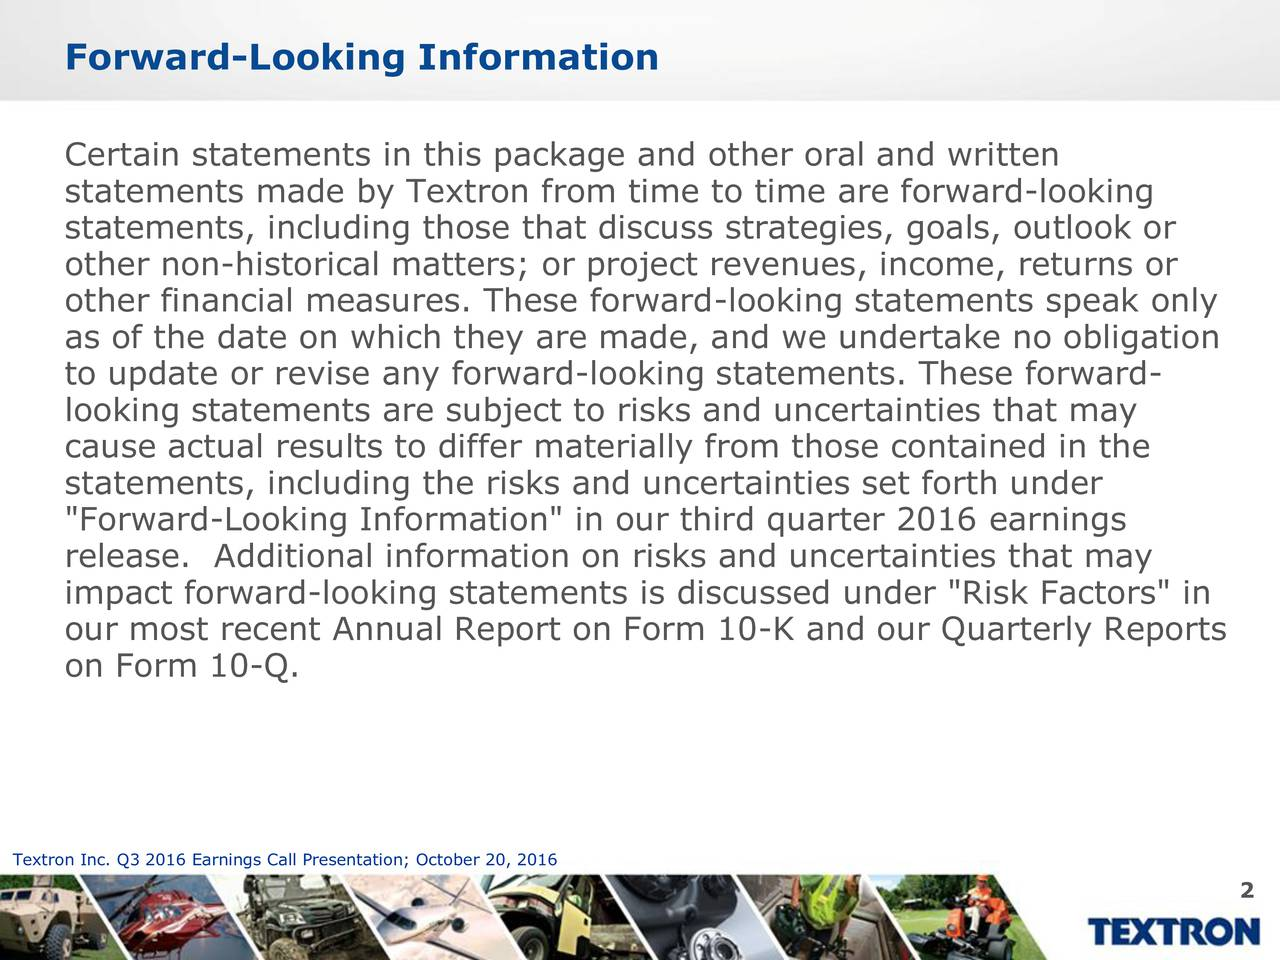 "Certain statements in this package and other oral and written statements made by Textron from time to time are forward-looking statements, including those that discuss strategies, goals, outlook or other non-historical matters; or project revenues, income, returns or other financial measures. These forward-looking statements speak only as of the date on which they are made, and we undertake no obligation to update or revise any forward-looking statements. These forward- looking statements are subject to risks and uncertainties that may cause actual results to differ materially from those contained in the statements, including the risks and uncertainties set forth under ""Forward-Looking Information"" in our third quarter 2016 earnings release. Additional information on risks and uncertainties that may impact forward-looking statements is discussed under ""Risk Factors"" in our most recent Annual Report on Form 10-K and our Quarterly Reports on Form 10-Q. Textron Inc. Q3 2016 Earnings Call Presentation; October 20, 2016 2"